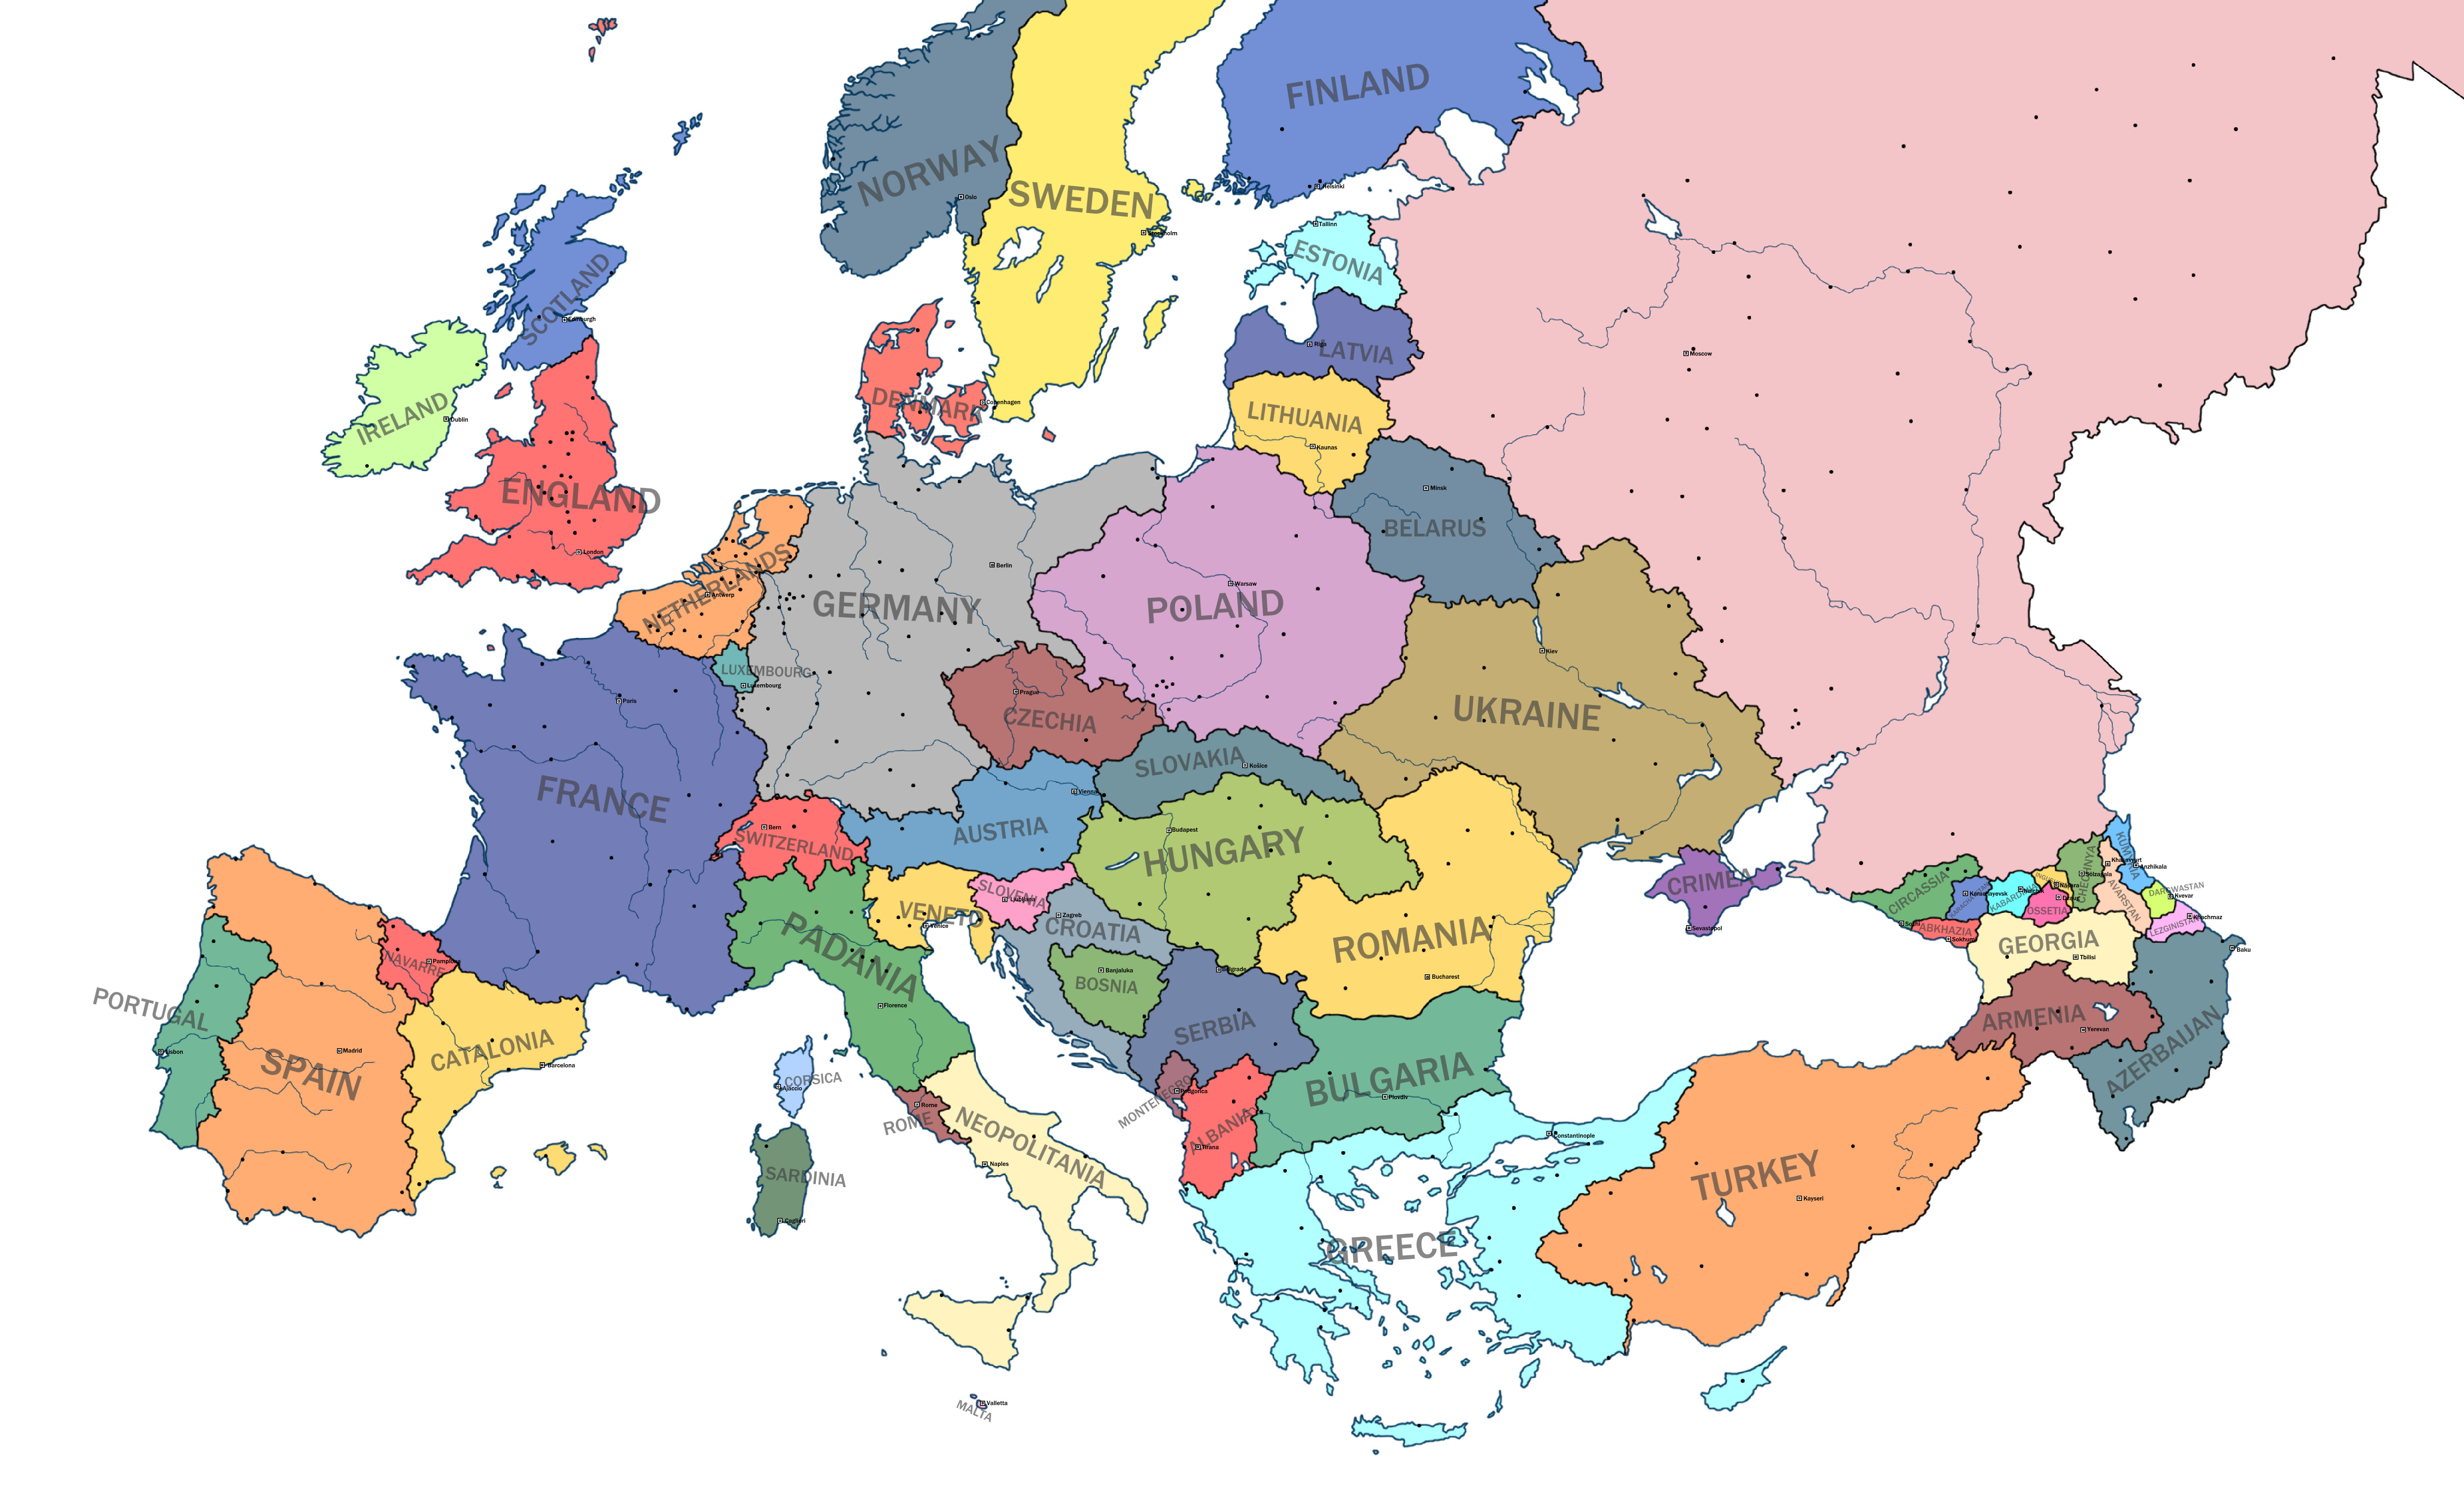 alternate map of europe Map of an Alternate Europe | Historical maps, Europe map, Fantasy map